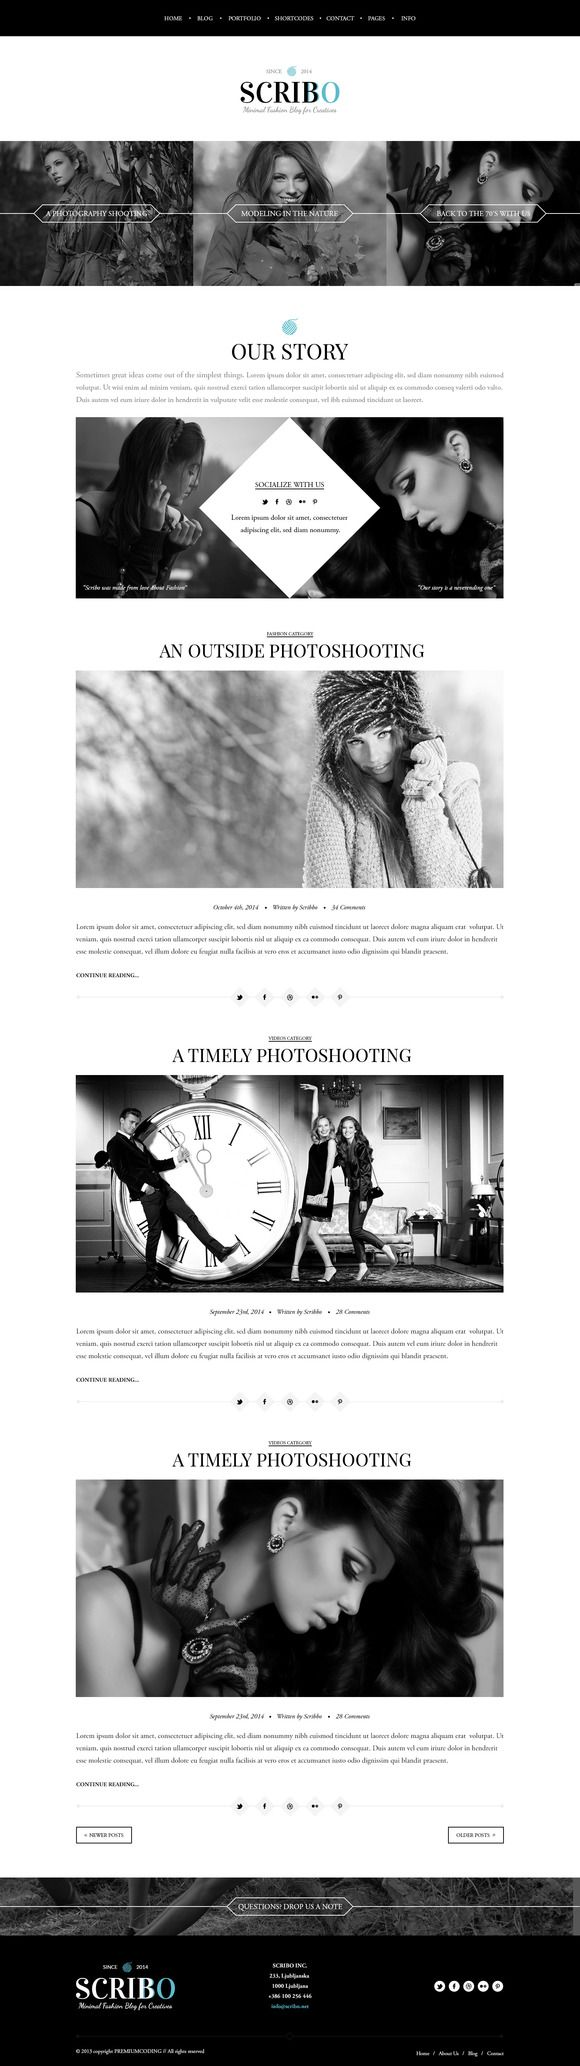 Scribo - Fashion Blog Template on @creativemarket   Designed for blog's, #fashion sites and minimal personal websites, Scribo is the perfect fashion blog #template for your or your client's small business or your personal blog.